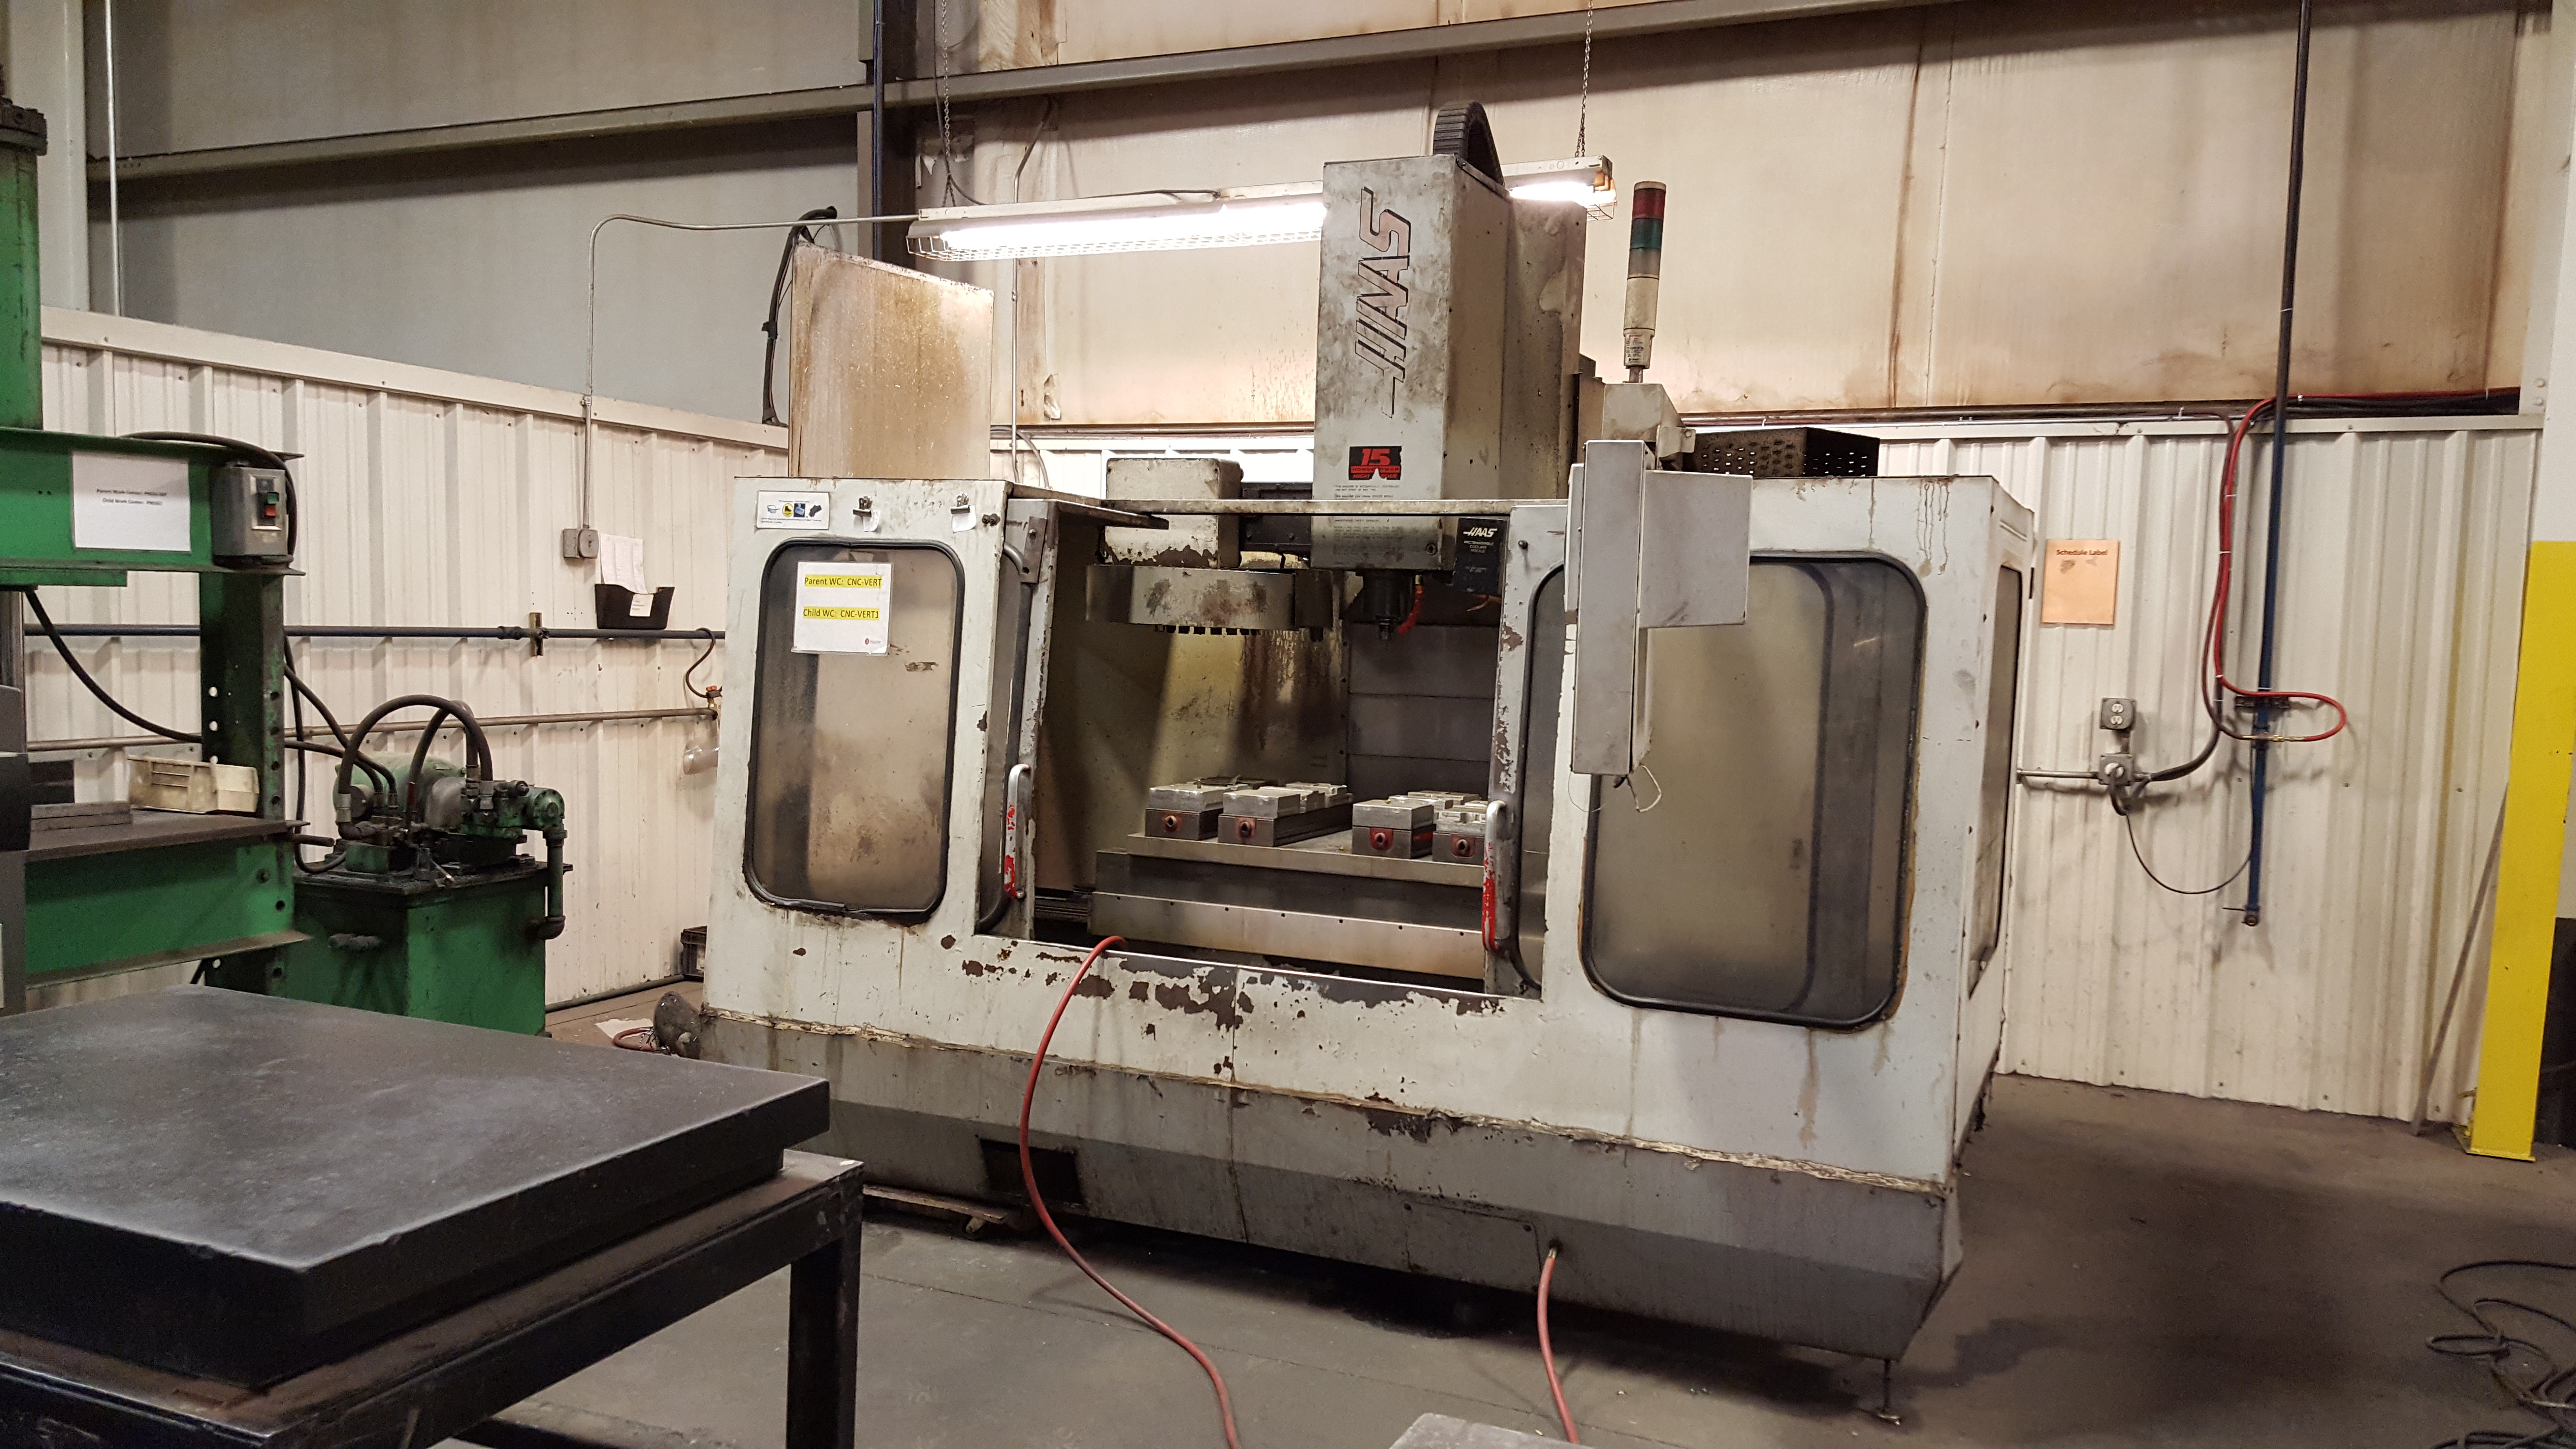 Cnc Mill For Sale >> Used Haas Vf3 Cnc Mill For Sale Call 616 200 4308